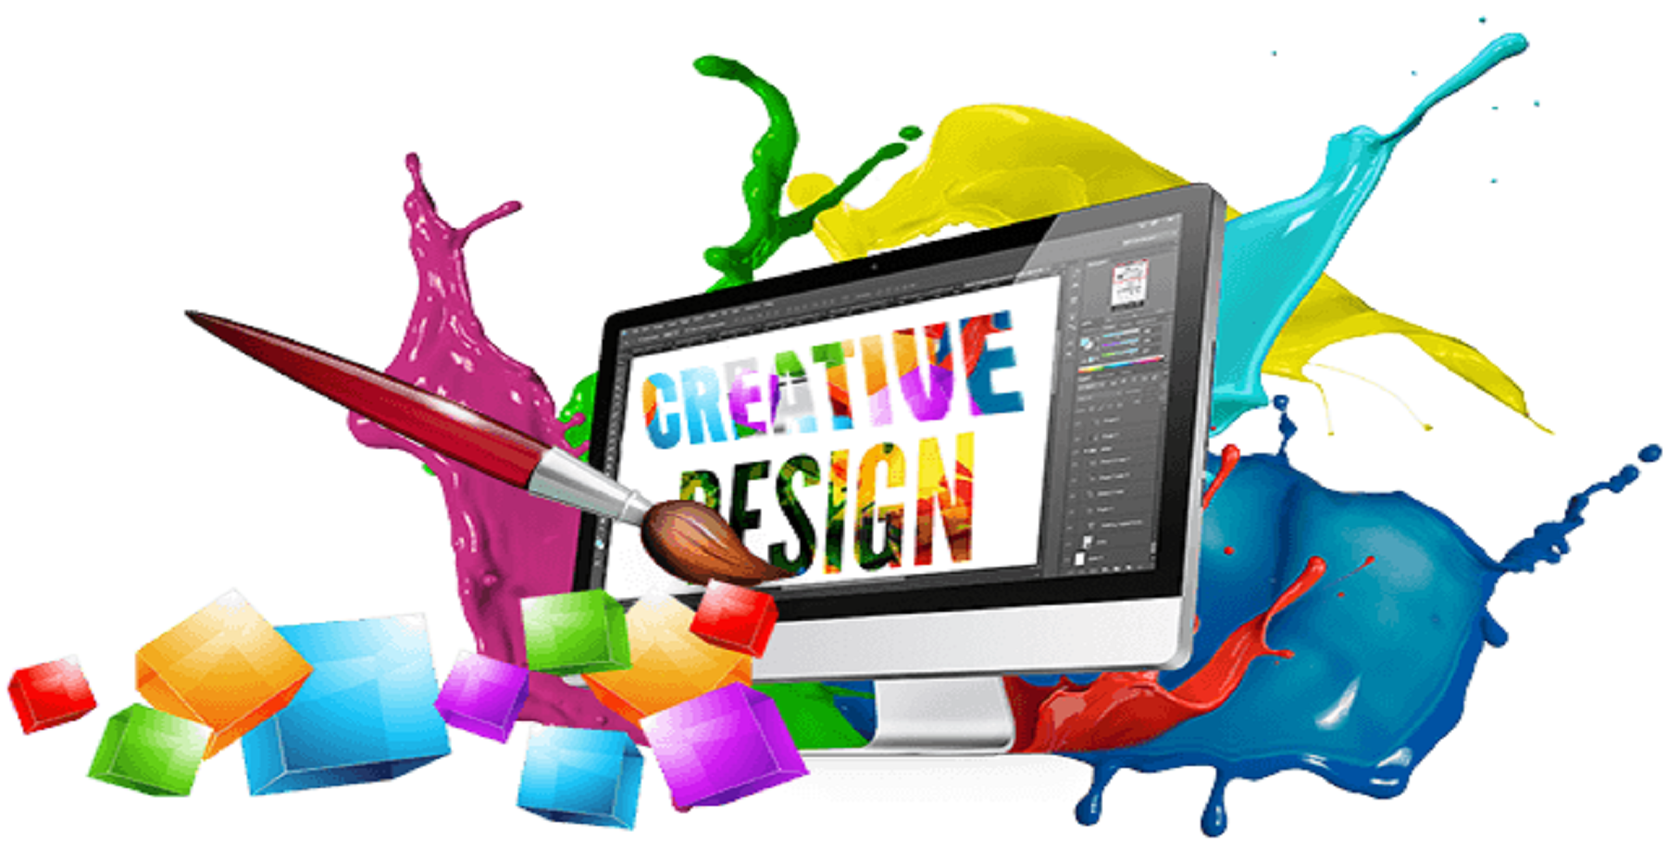 Web-designing-services-web-page-02